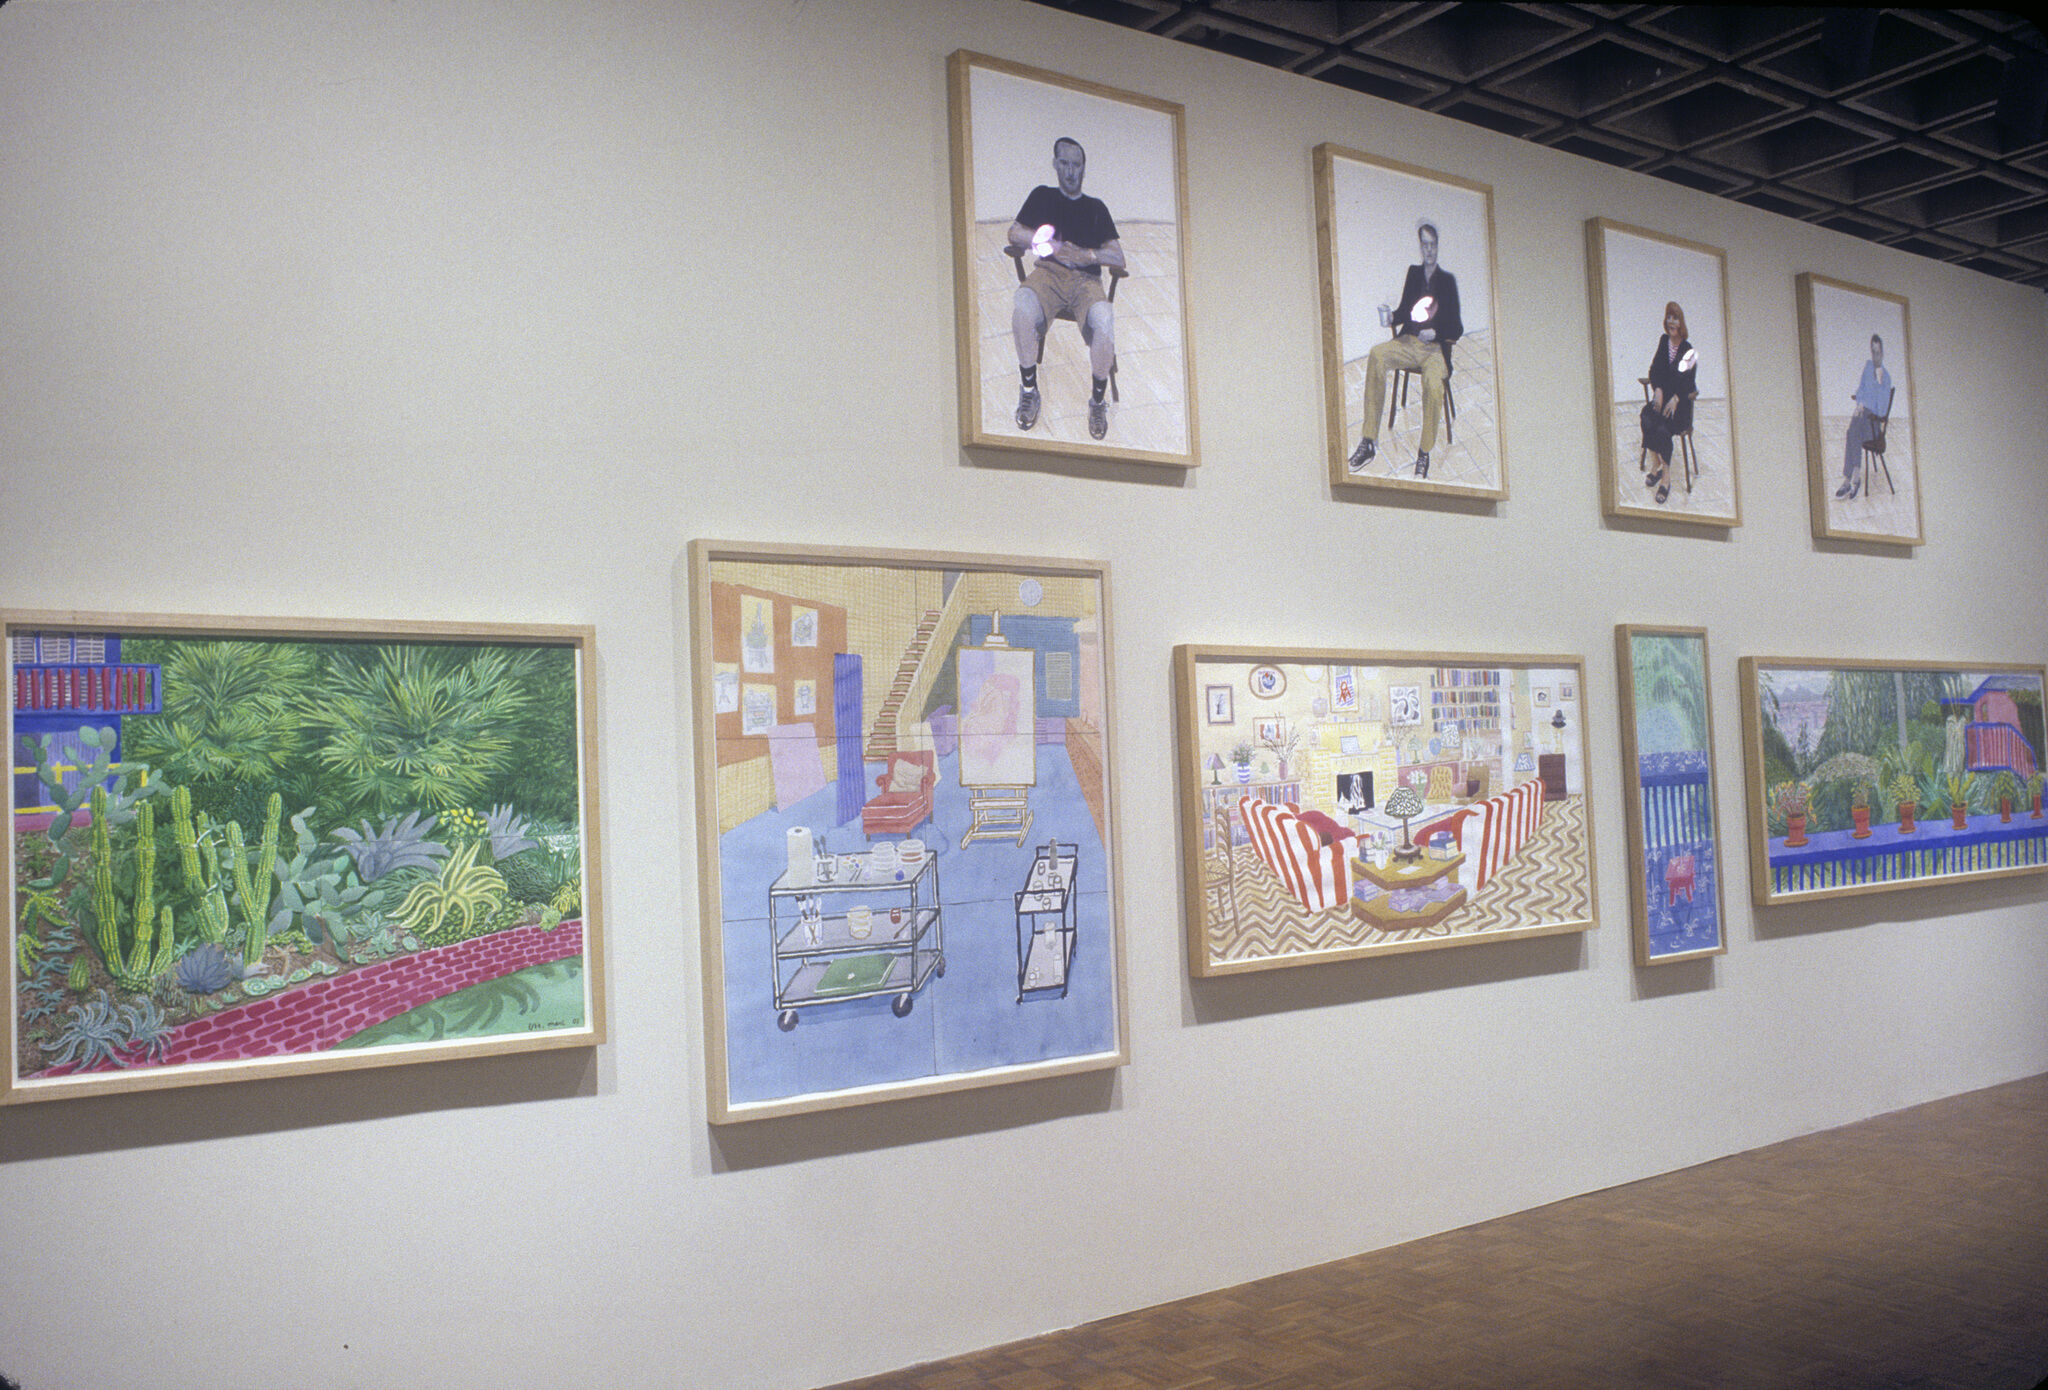 A wall in a gallery filled with art work by David Hockney.